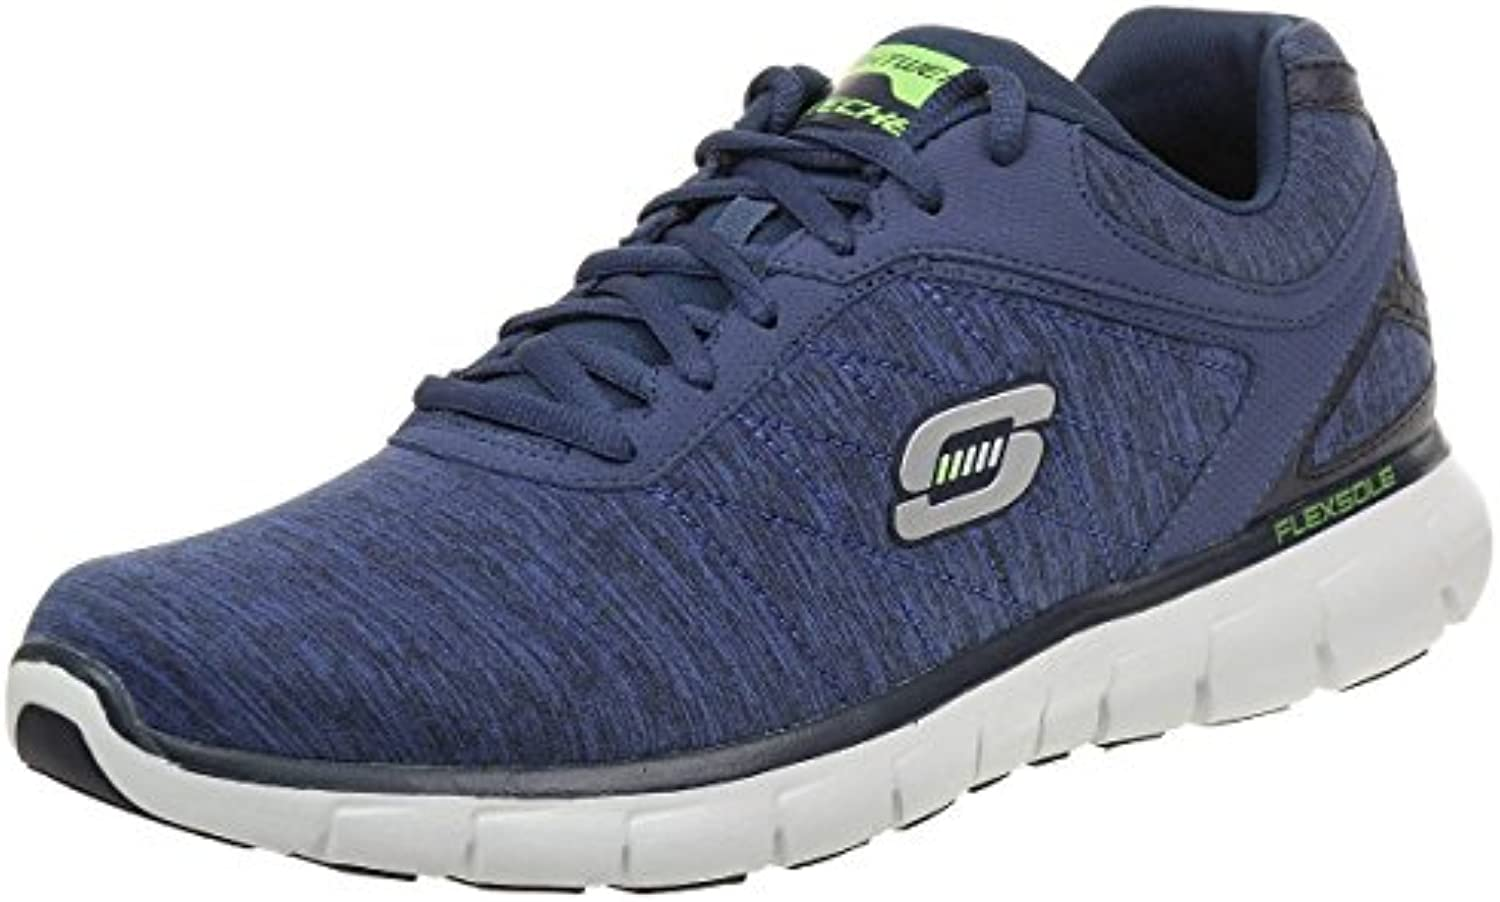 SKECHERS - SYNERGY INSTANT REACTION 51189 - NVY